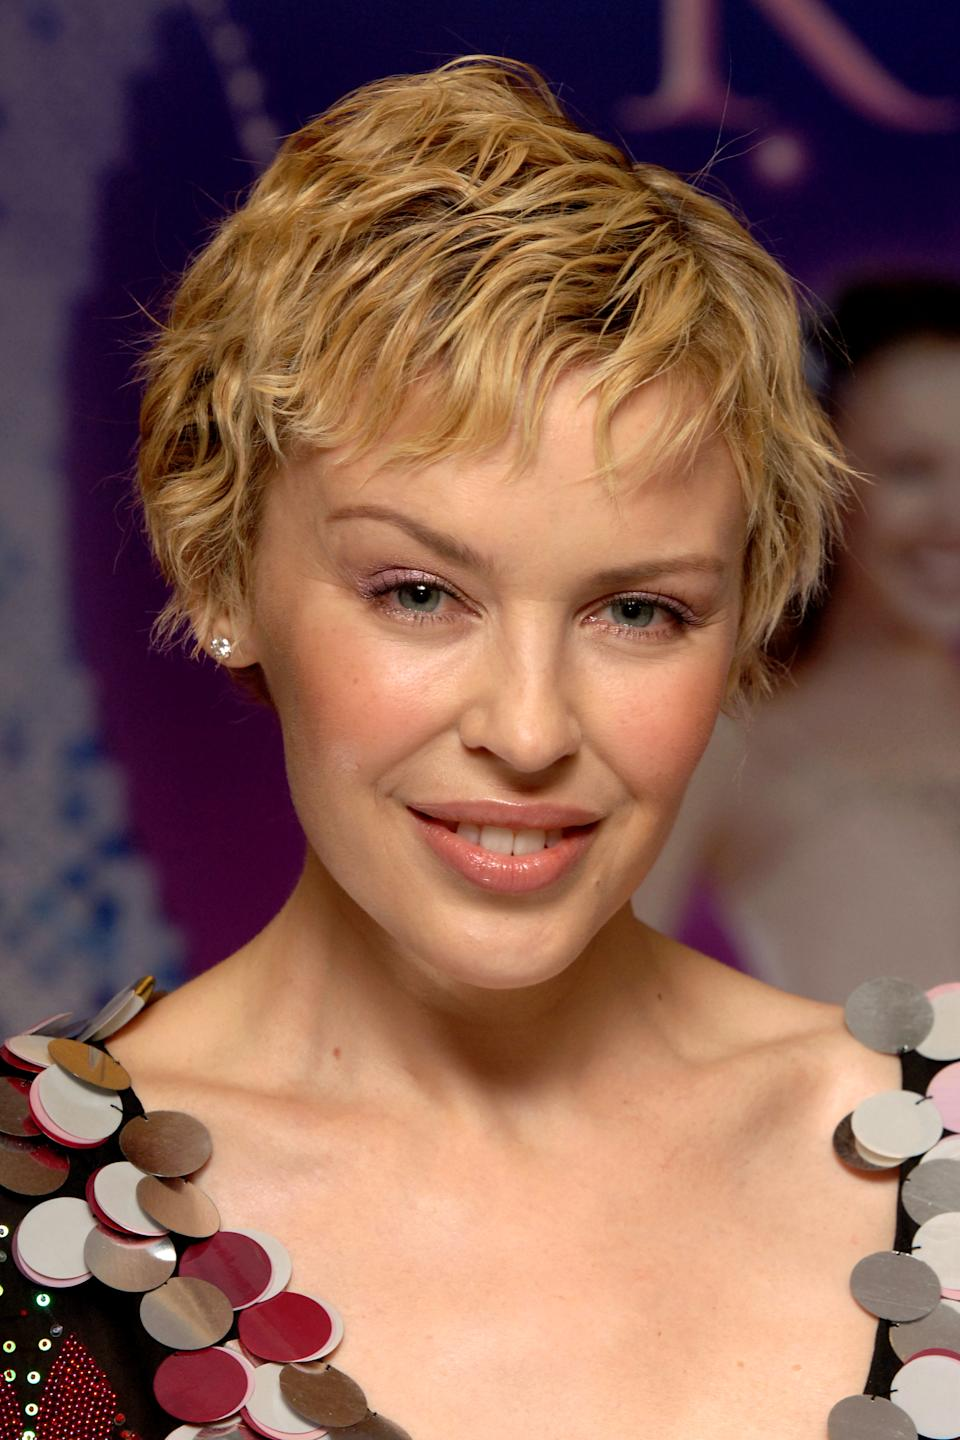 Singer Kylie Minogue with copies of her new book, The Showgirl Princess, during a book signing session at Waterstone's in London.